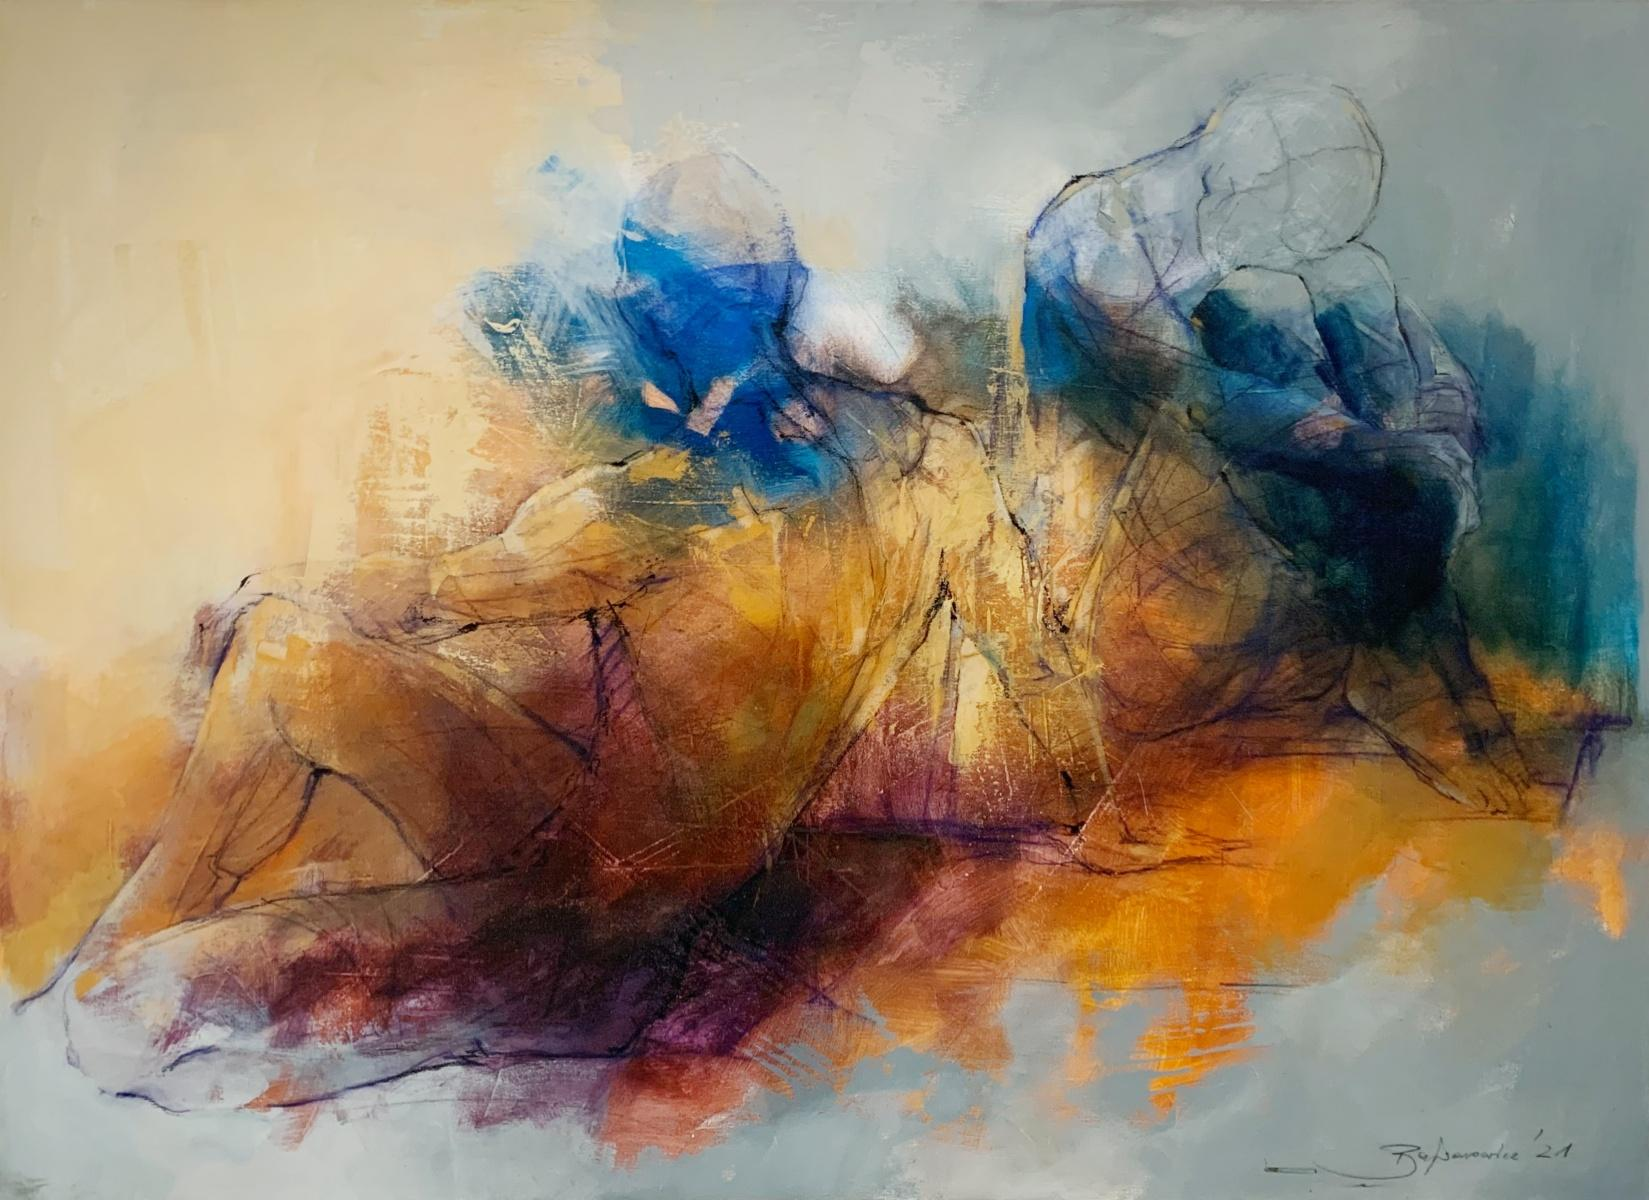 A couple - 21st Century, Contemporary Figurative Oil Painting, Abstraction